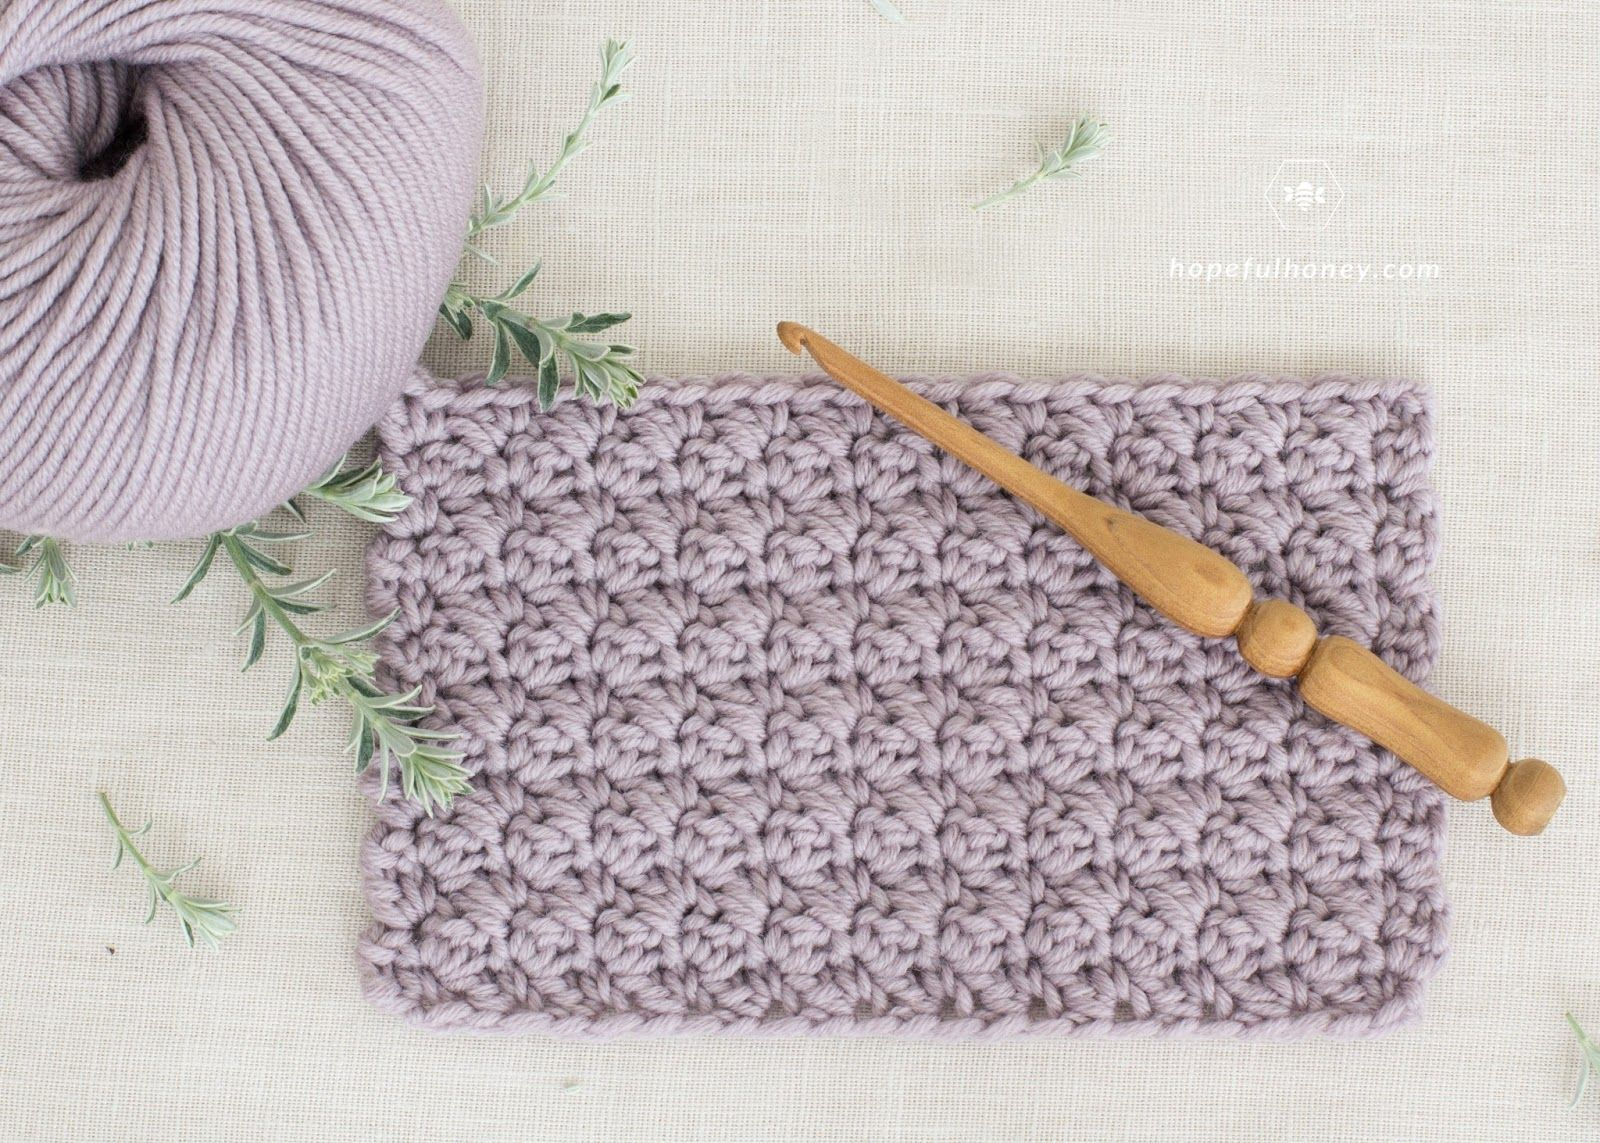 How To Crochet The Modified Sedge Stitch - Tutorial by